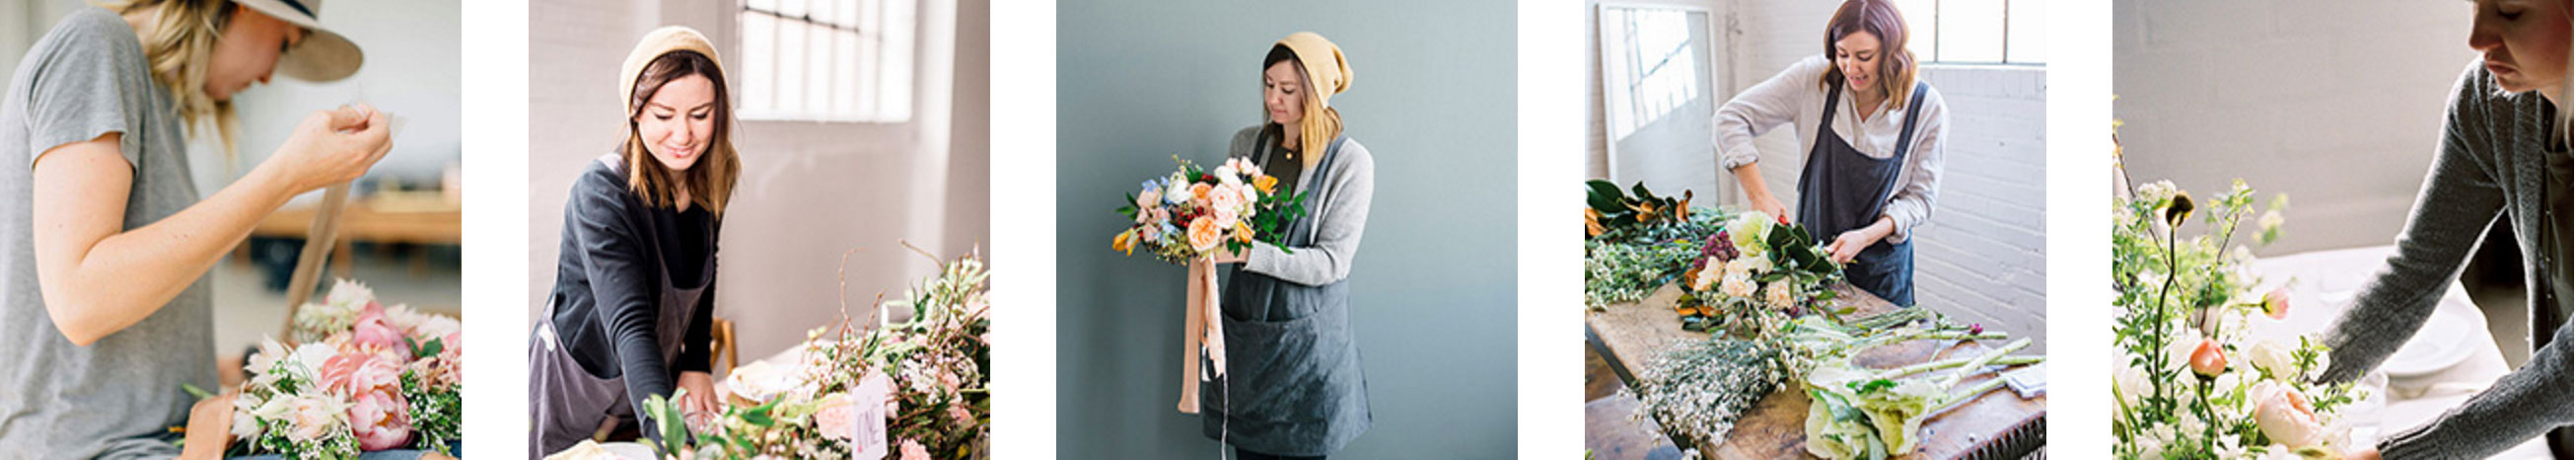 About Roots Floral Design and Kaytee Stice, Utah wedding florist